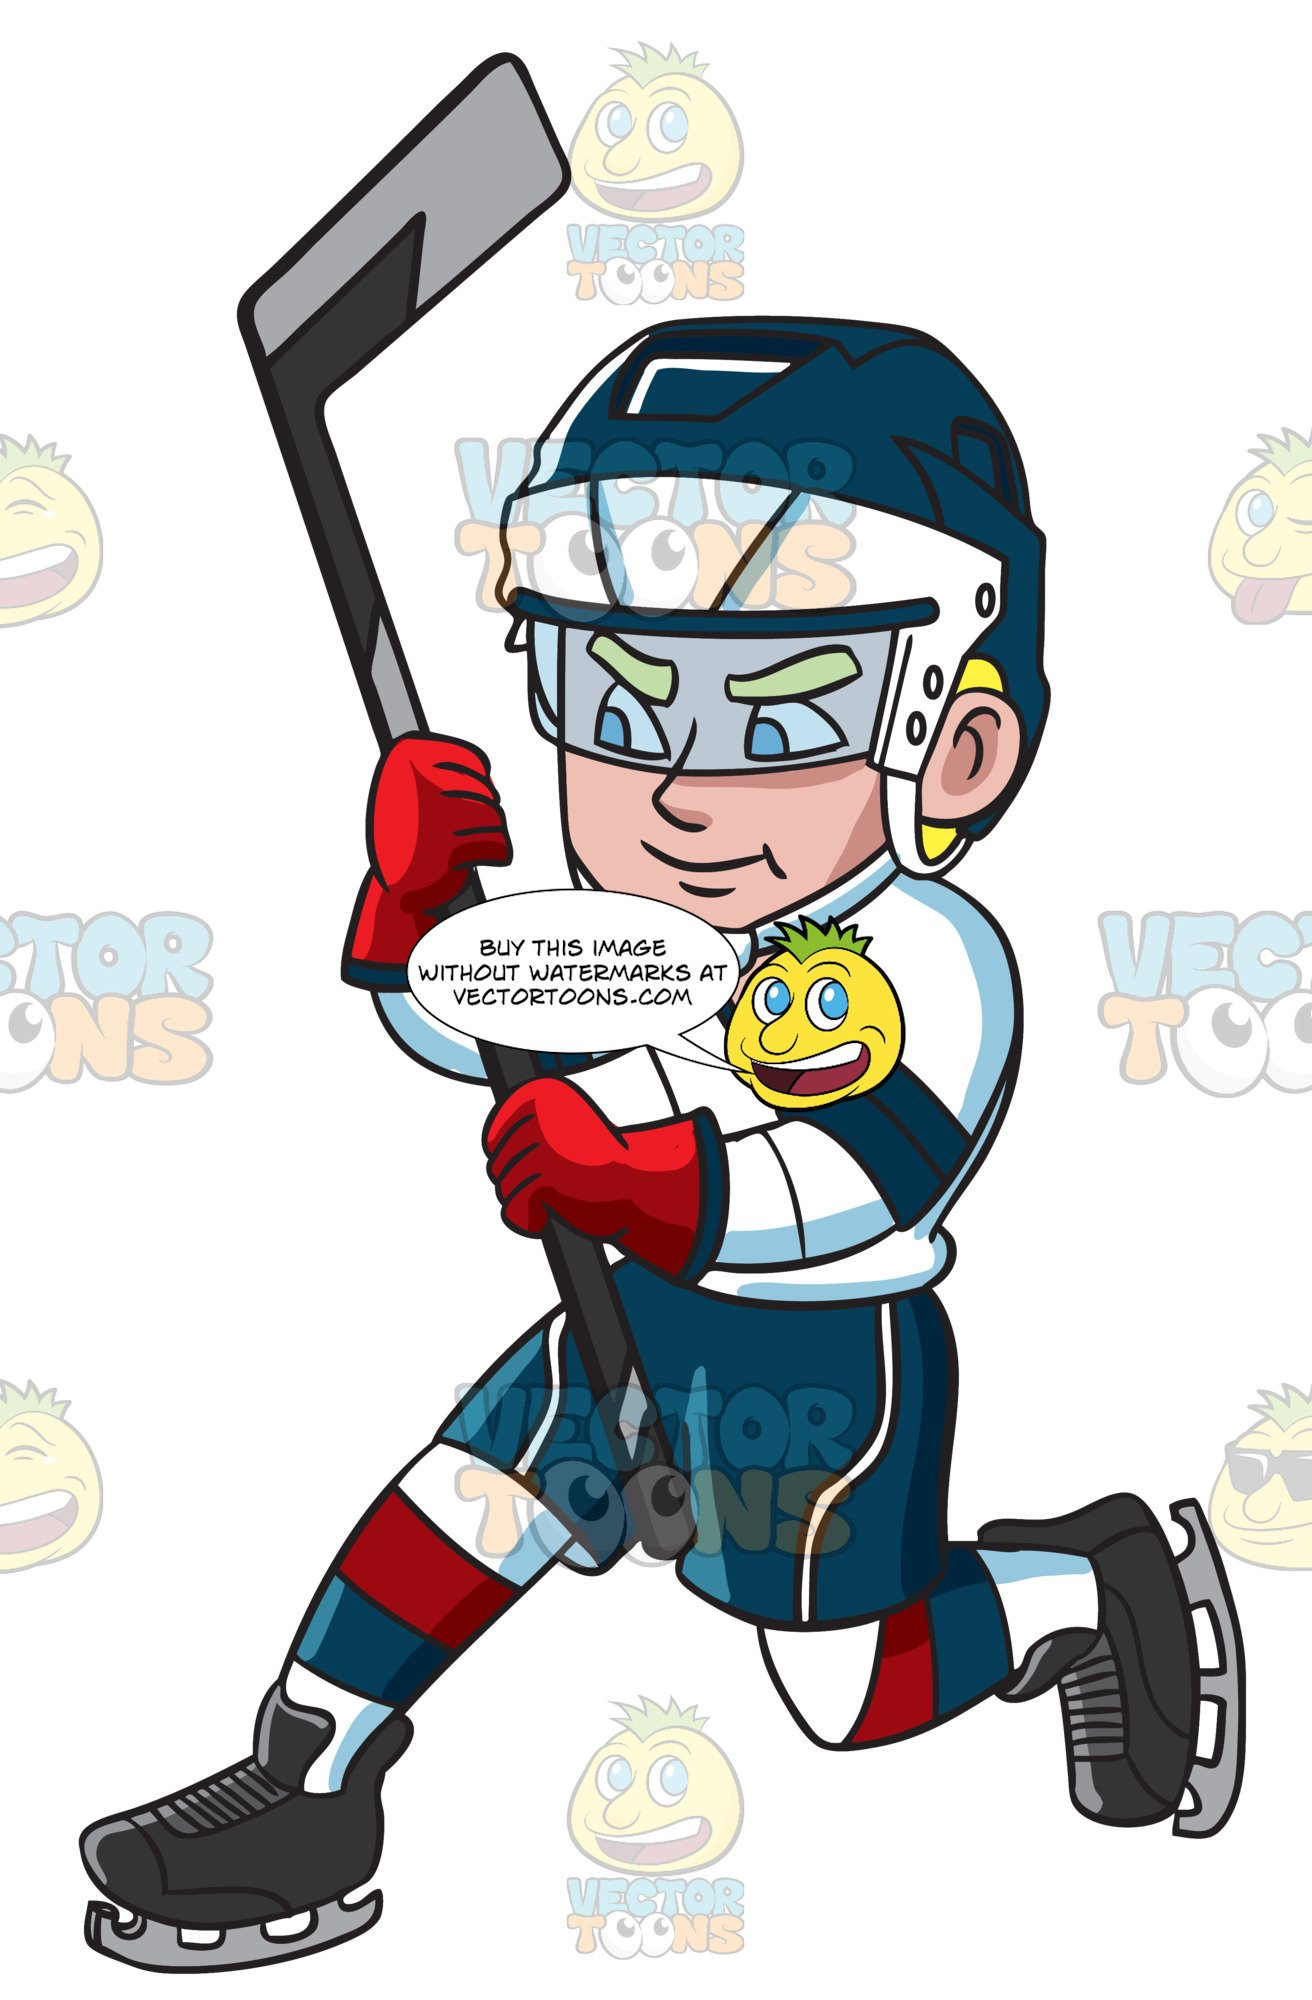 White and red goal clipart picture black and white library A Hockey Player After Hitting The Puck For A Shot At The Goal picture black and white library